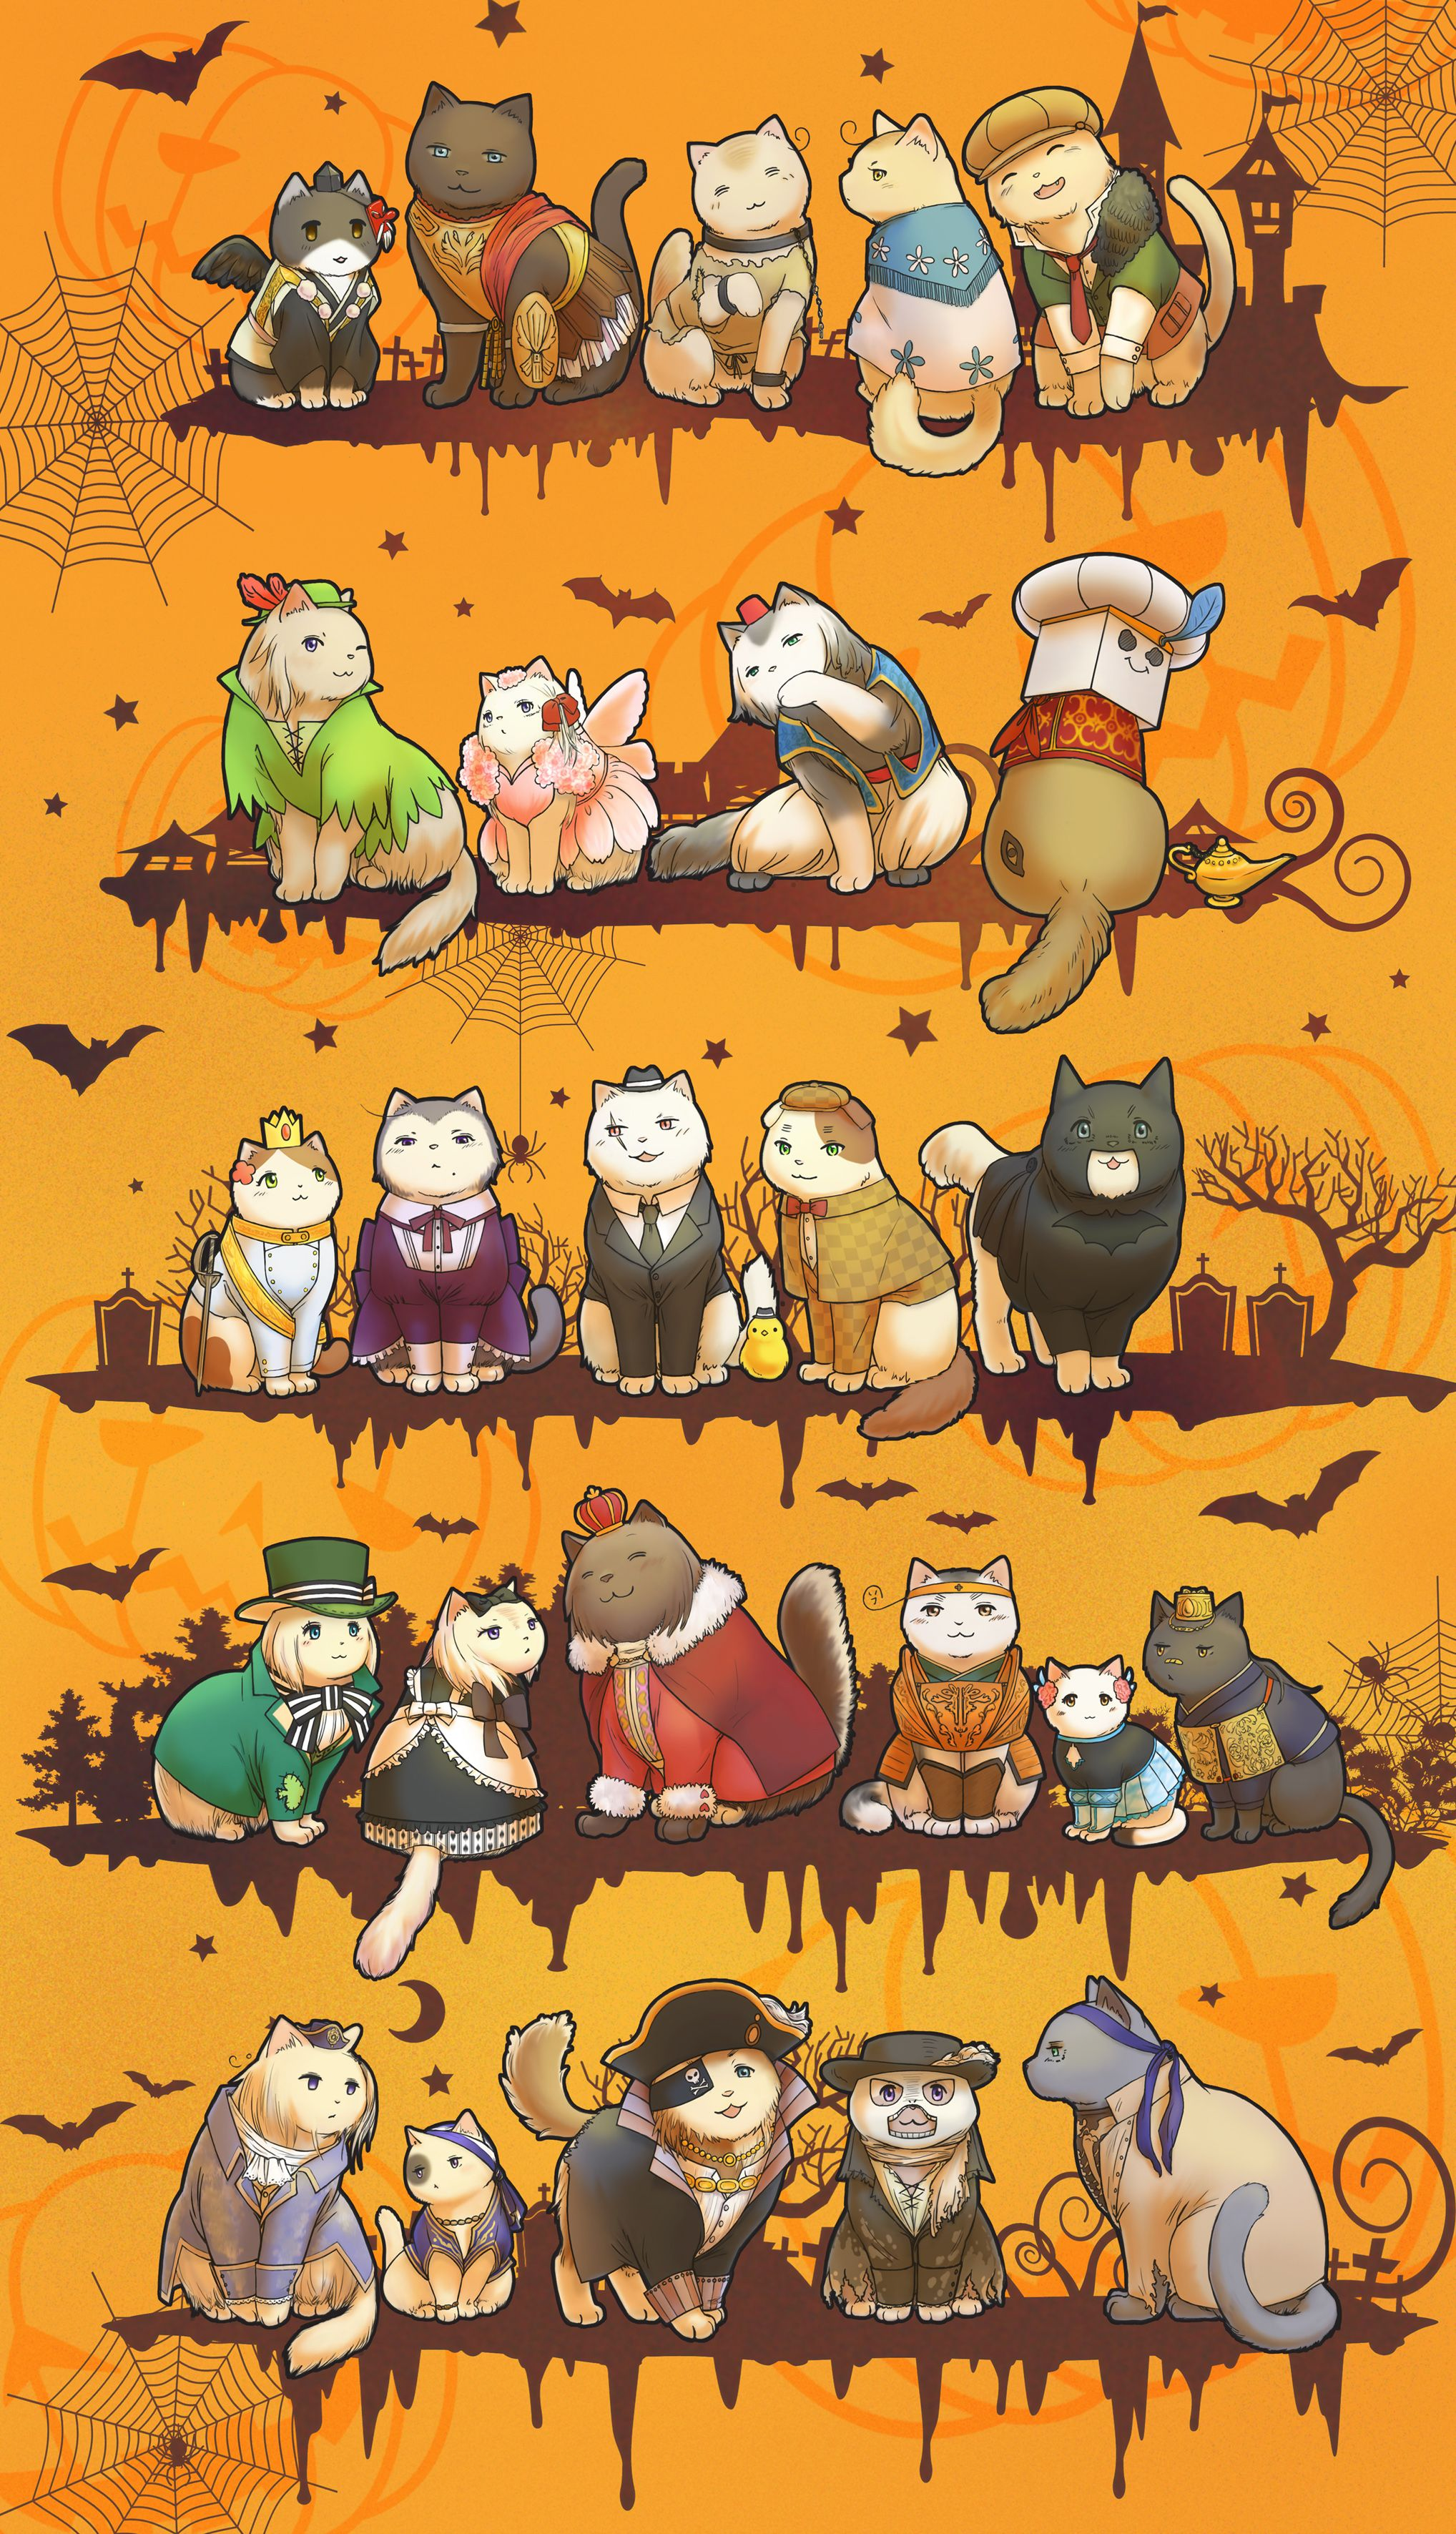 Nekotalia - Japan, Germany, North Italy, South Italy, and Spain / France, Monaco, Greece, and Turkey / Hungary, Austria, Prussia, England, and America / Ukraine, Belarus, Russia, South Korea, Taiwan, and China / Norway, Iceland, Denmark, Finland, and Seden : Halloween Cats with their Officials Costumes